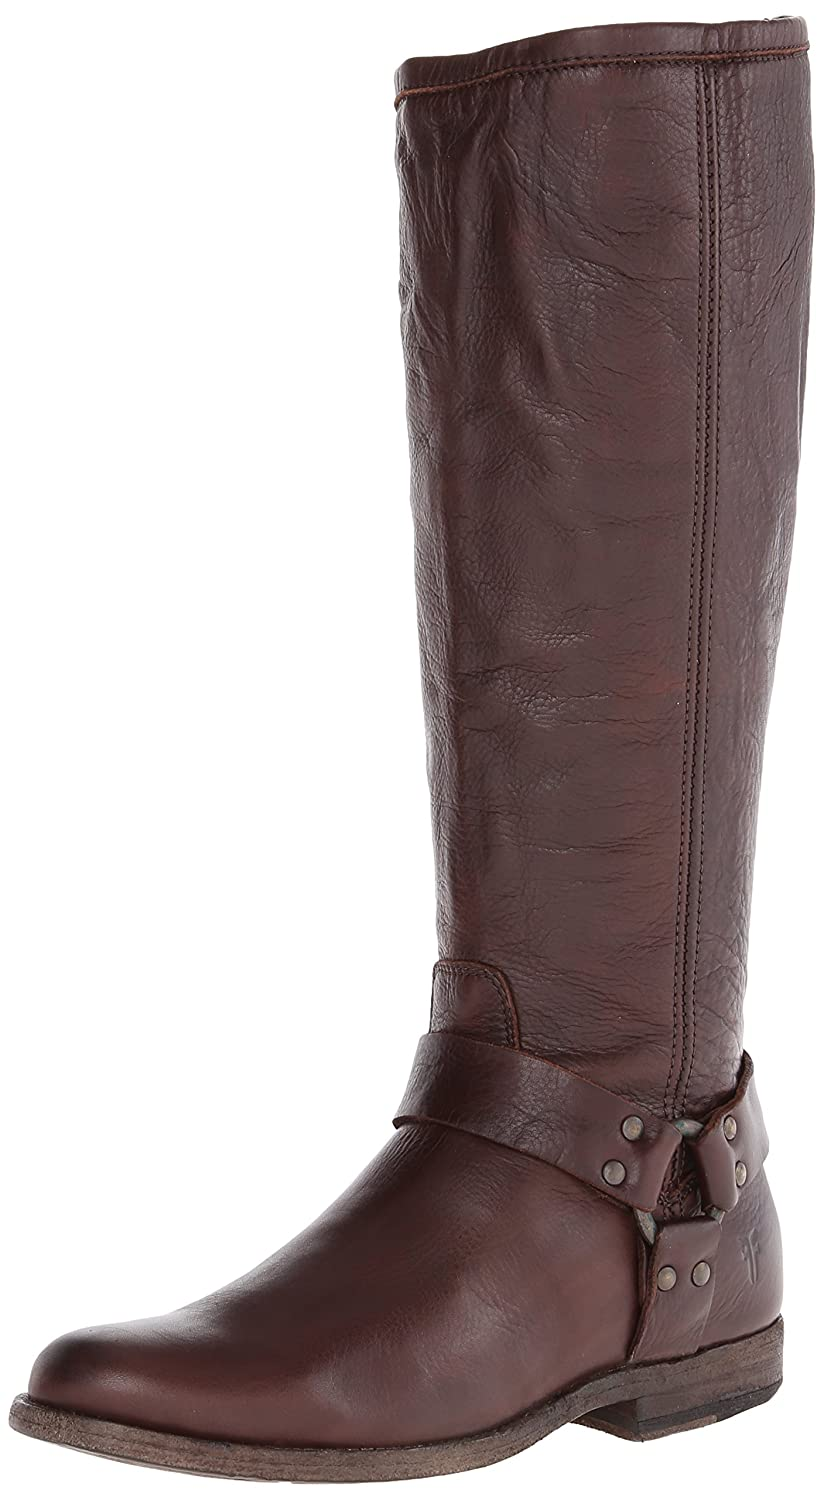 FRYE Women's Phillip Harness Tall Wide-Calf Boot B00B1YV7C4 6 B(M) US|Dark Brown Soft Vintage Leather Wide Calf-76850